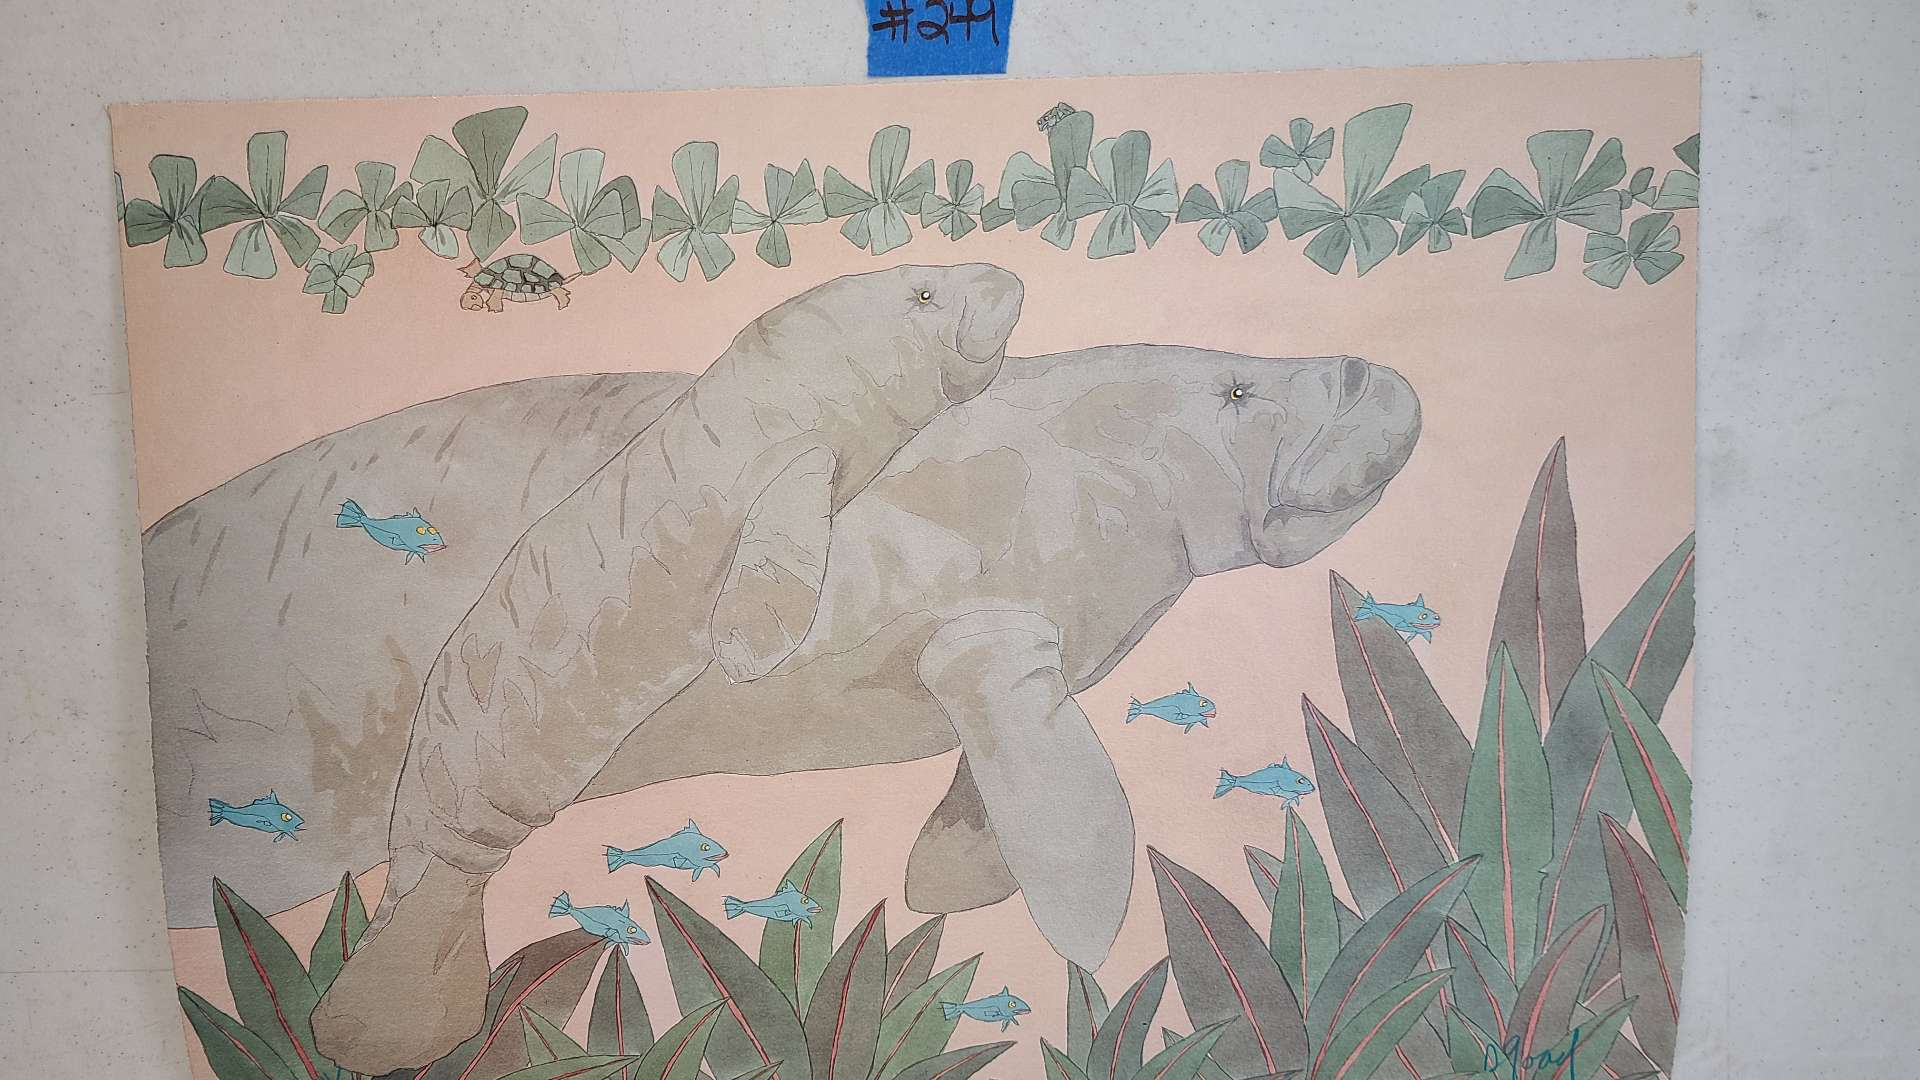 Lot # 249 Signed & Numbered Manatee Lithograph